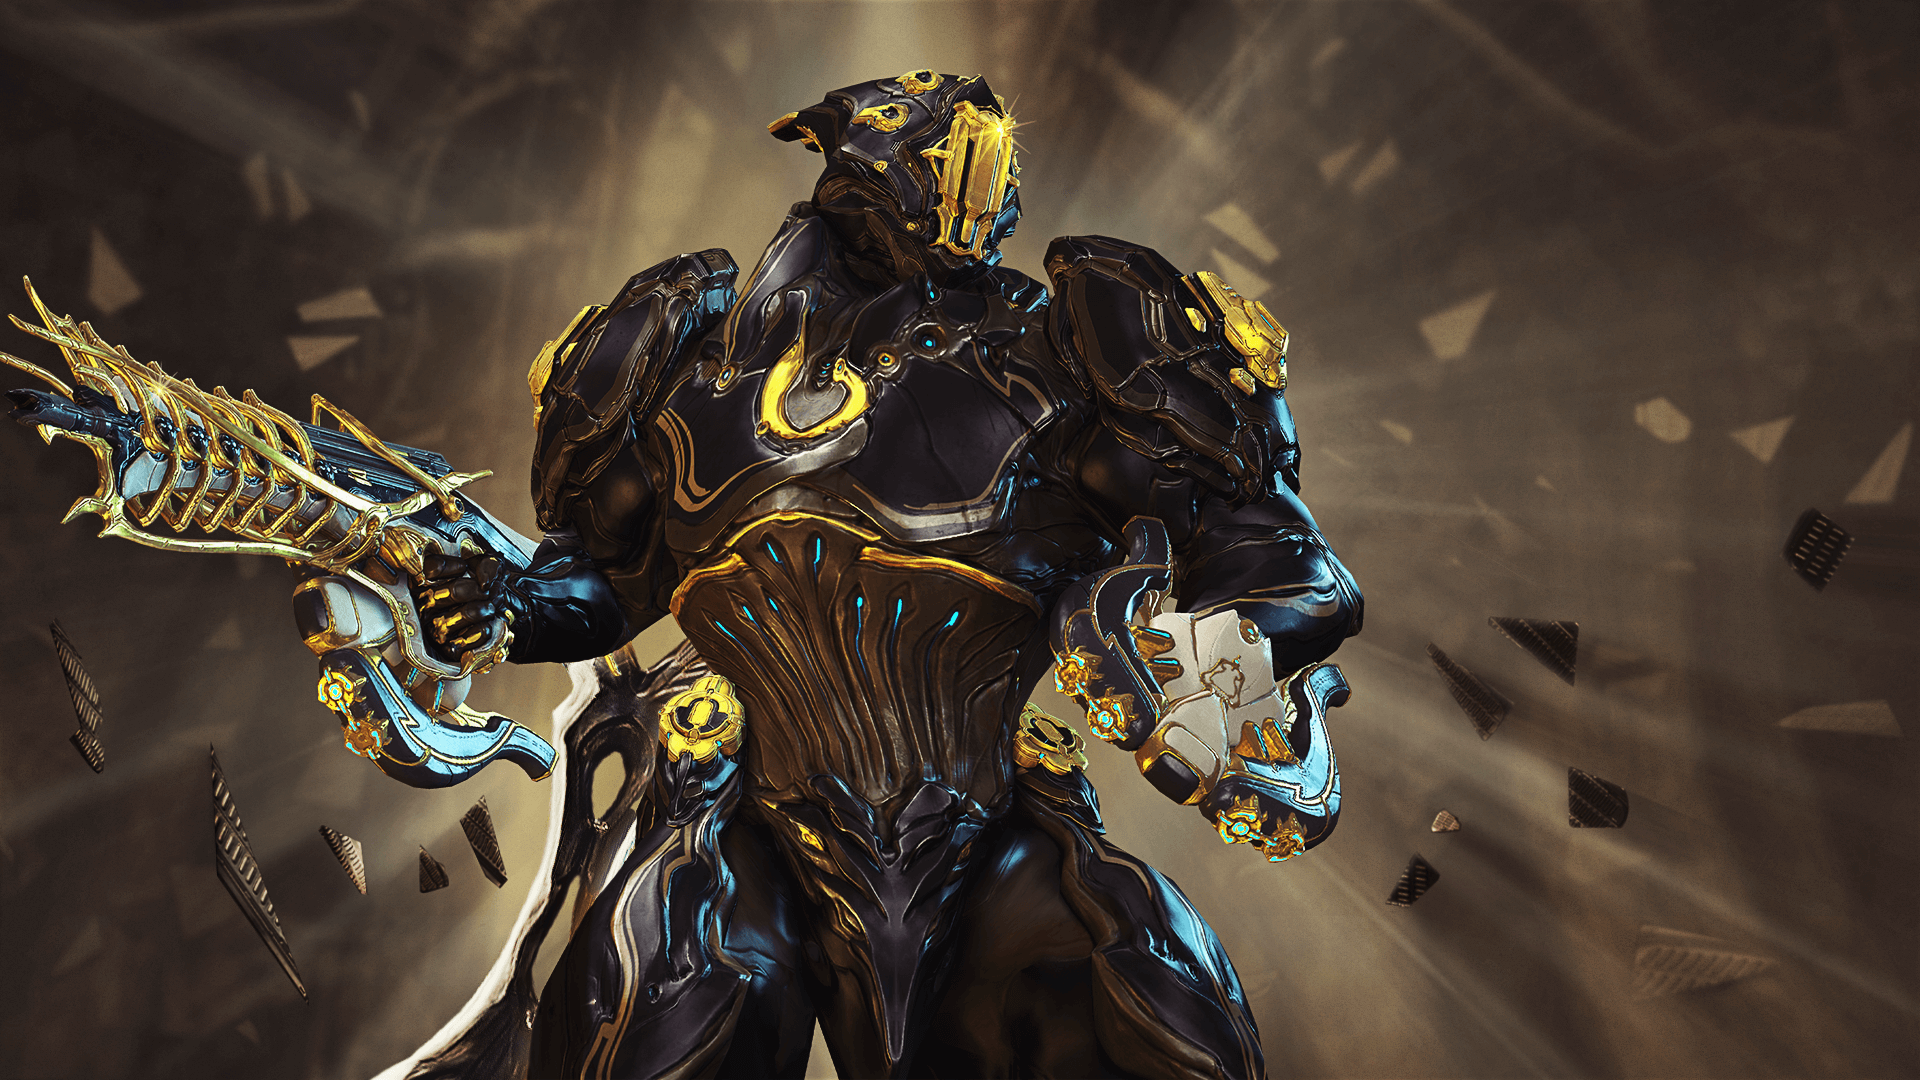 The Top 10 Warframes In Warframe Best Frames In September 2020 Meta It's designed to speed up all enemies around you with your fourth ability (molecular prime) while also increasing the damage they take from all sources. the top 10 warframes in warframe